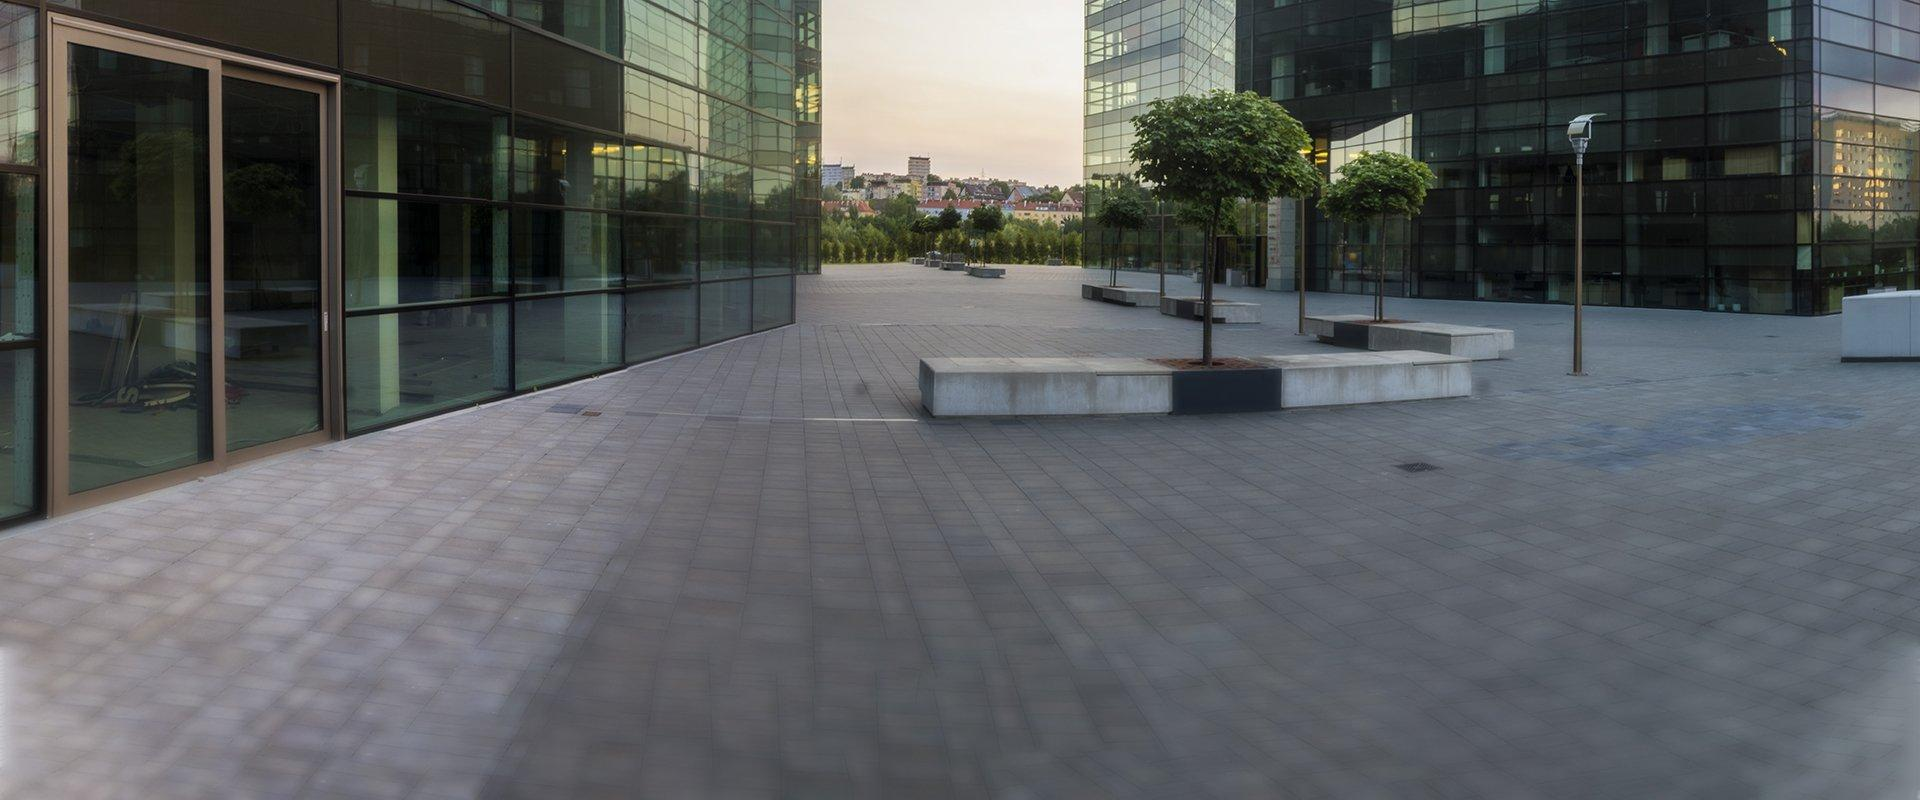 view of a courtyard outside of a commercial building in las vegas nevada